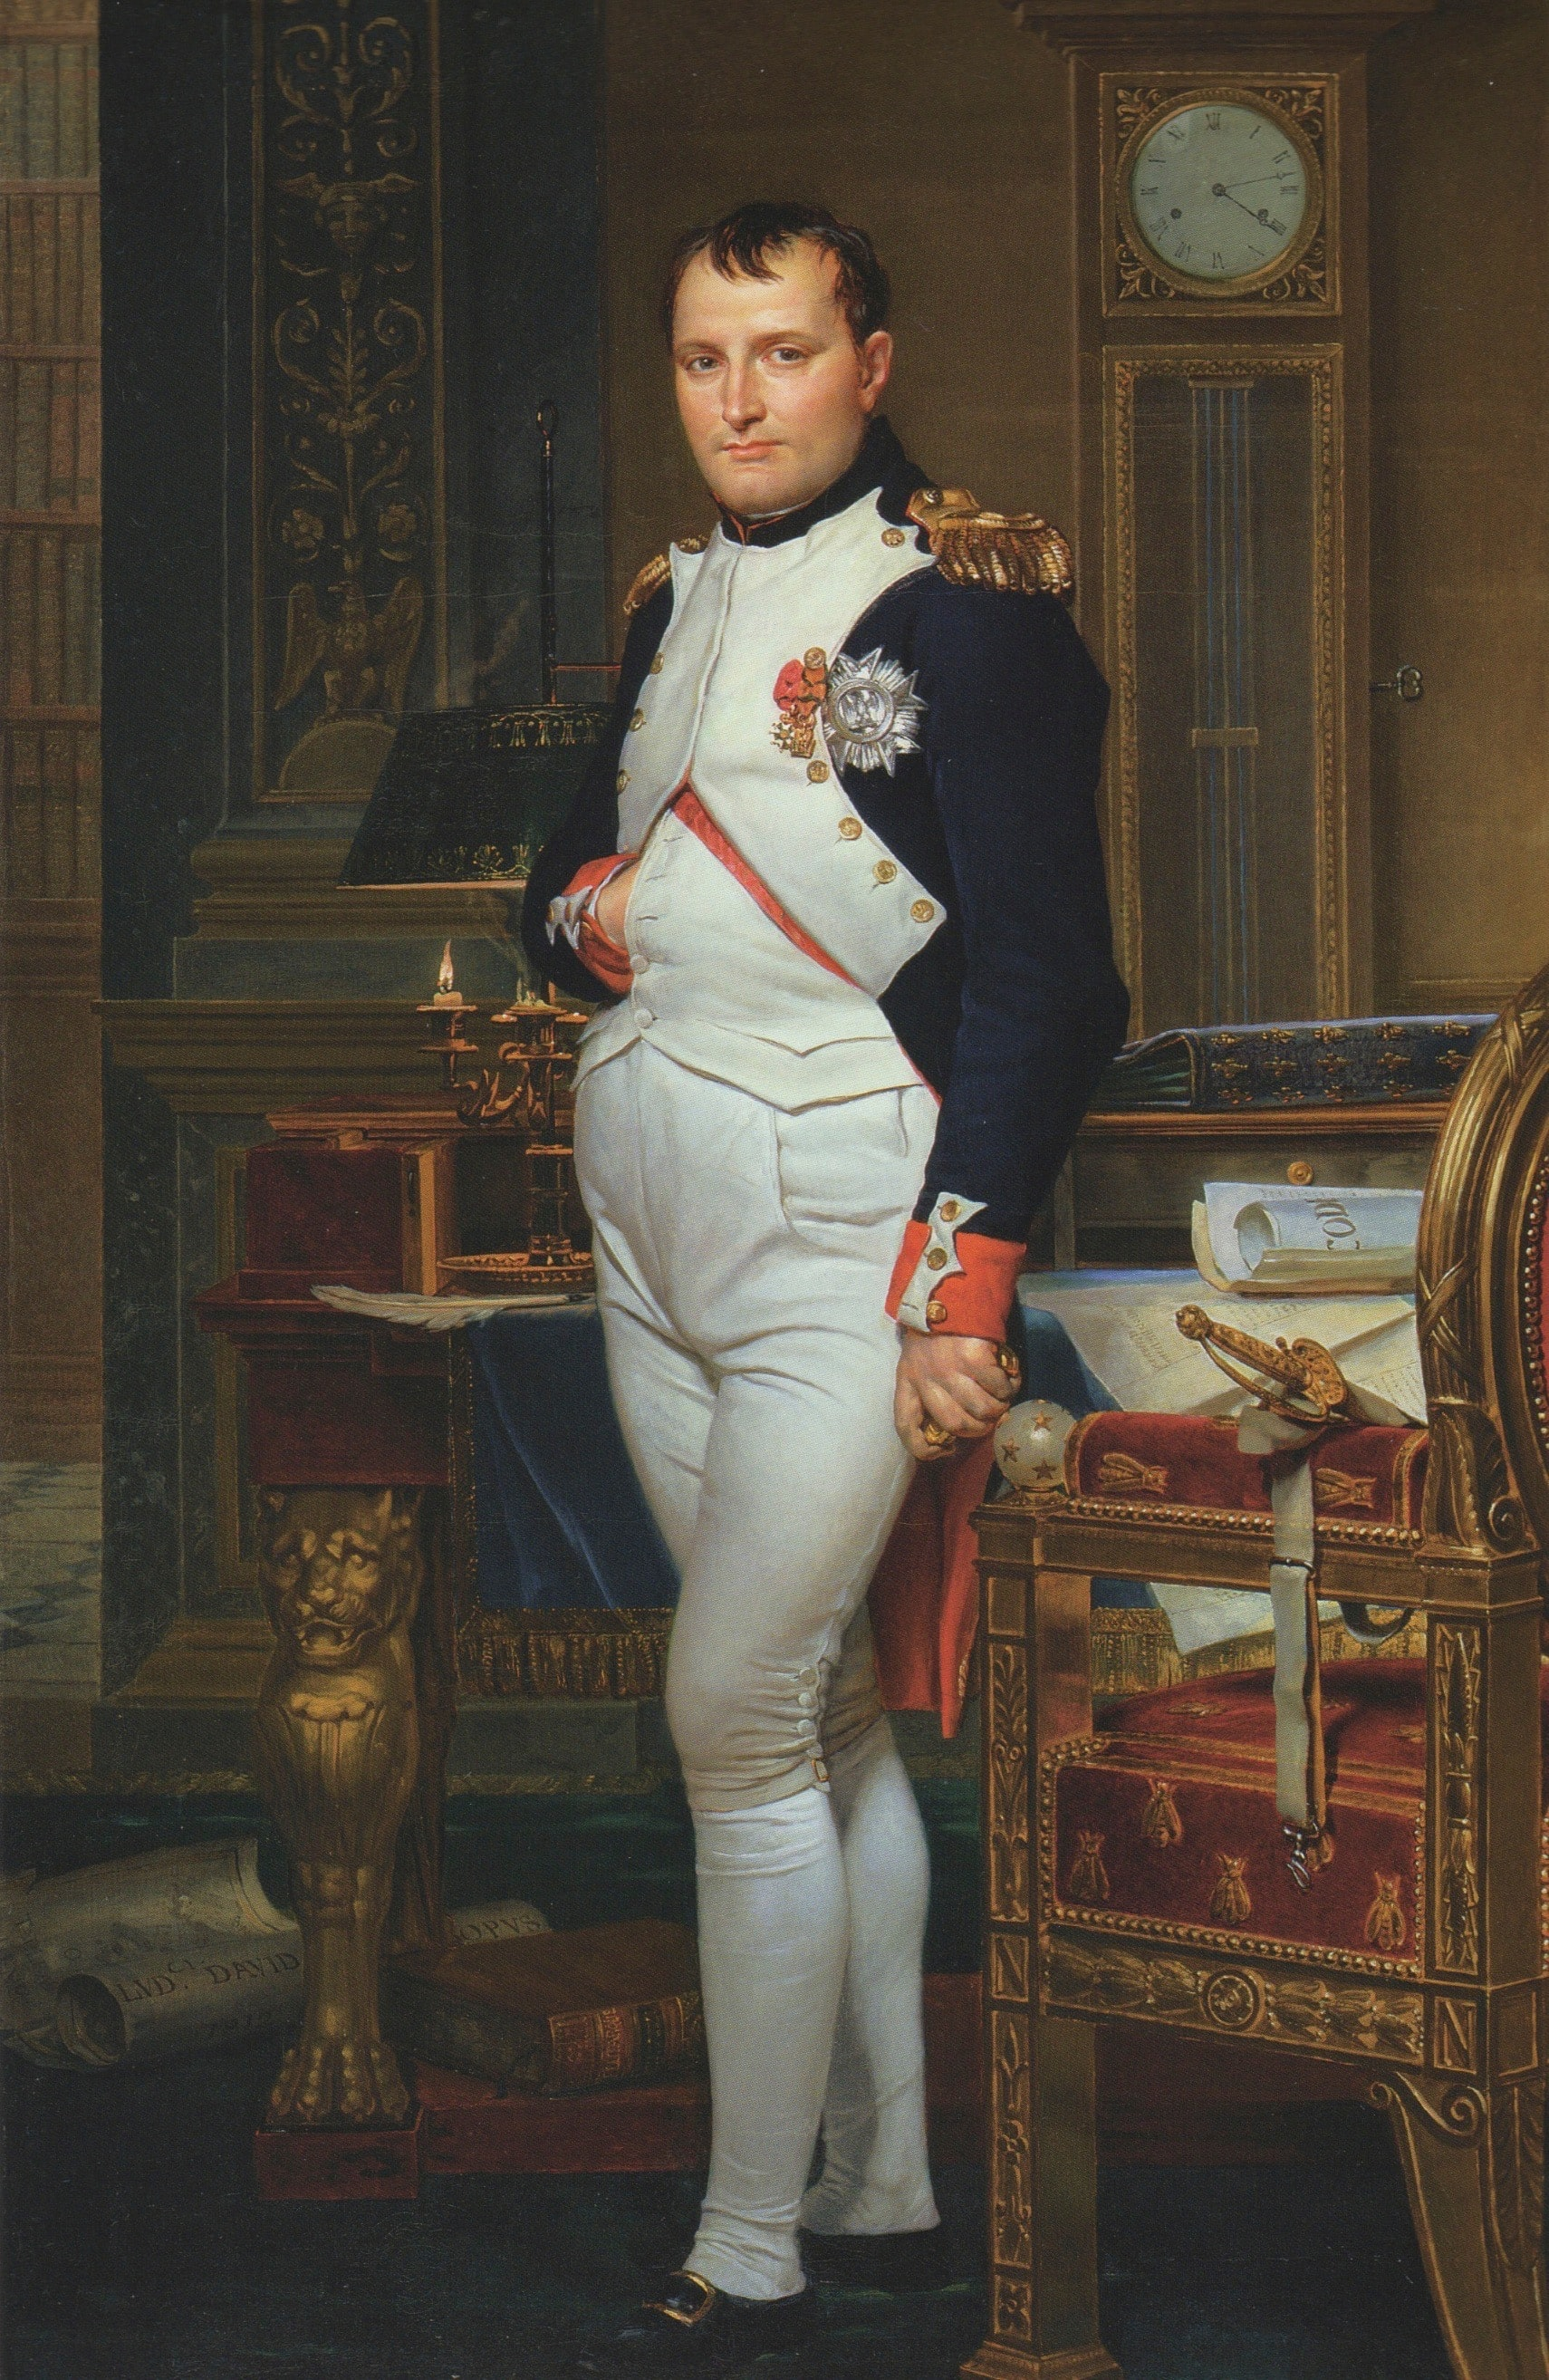 Jacques-Louis David, The Emperor Napoleon in His Study at the Tuileries, 1812 Bob Frishman, Fellow Of The National Association Of Watch And Clock Collectors, To Lecture At The Horological Society Of New York Bob Frishman, Fellow Of The National Association Of Watch And Clock Collectors, To Lecture At The Horological Society Of New York Napoleon by David